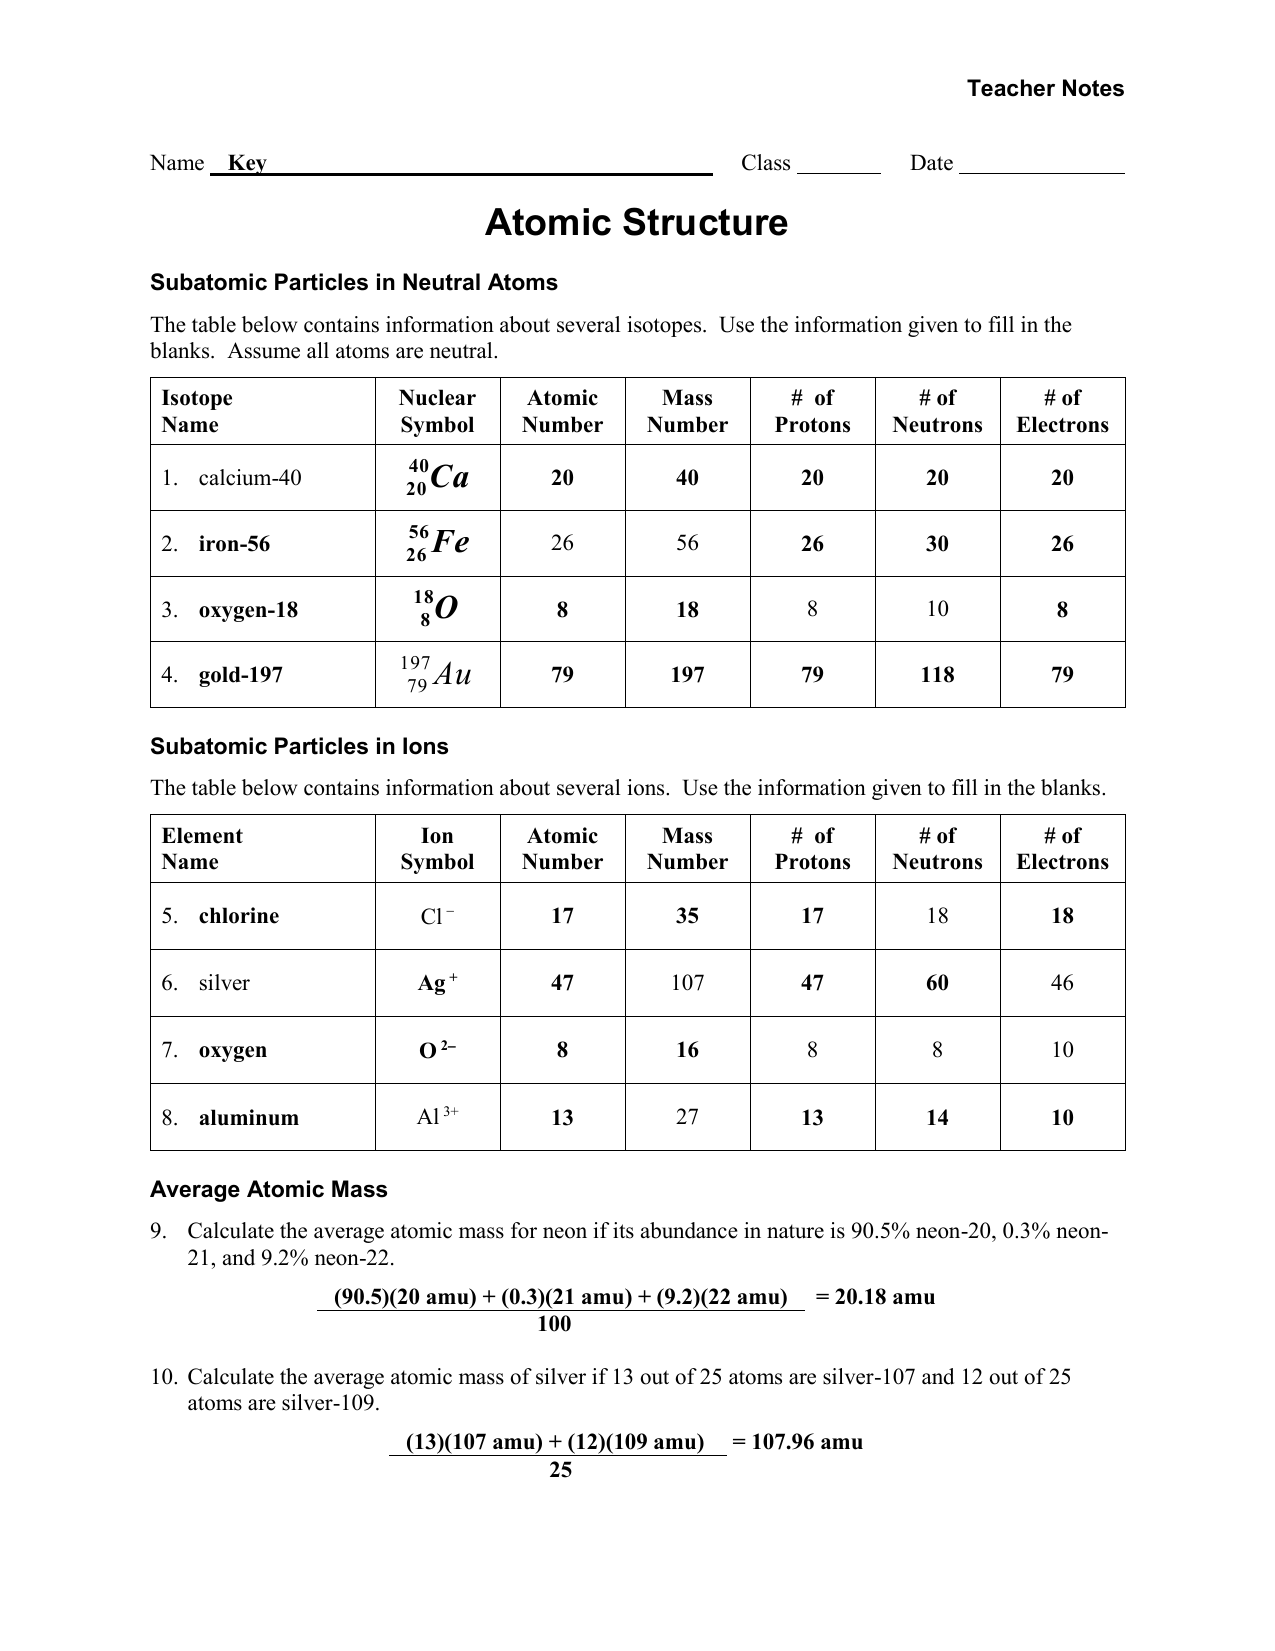 Worksheet - Atomic Structure - Teacher